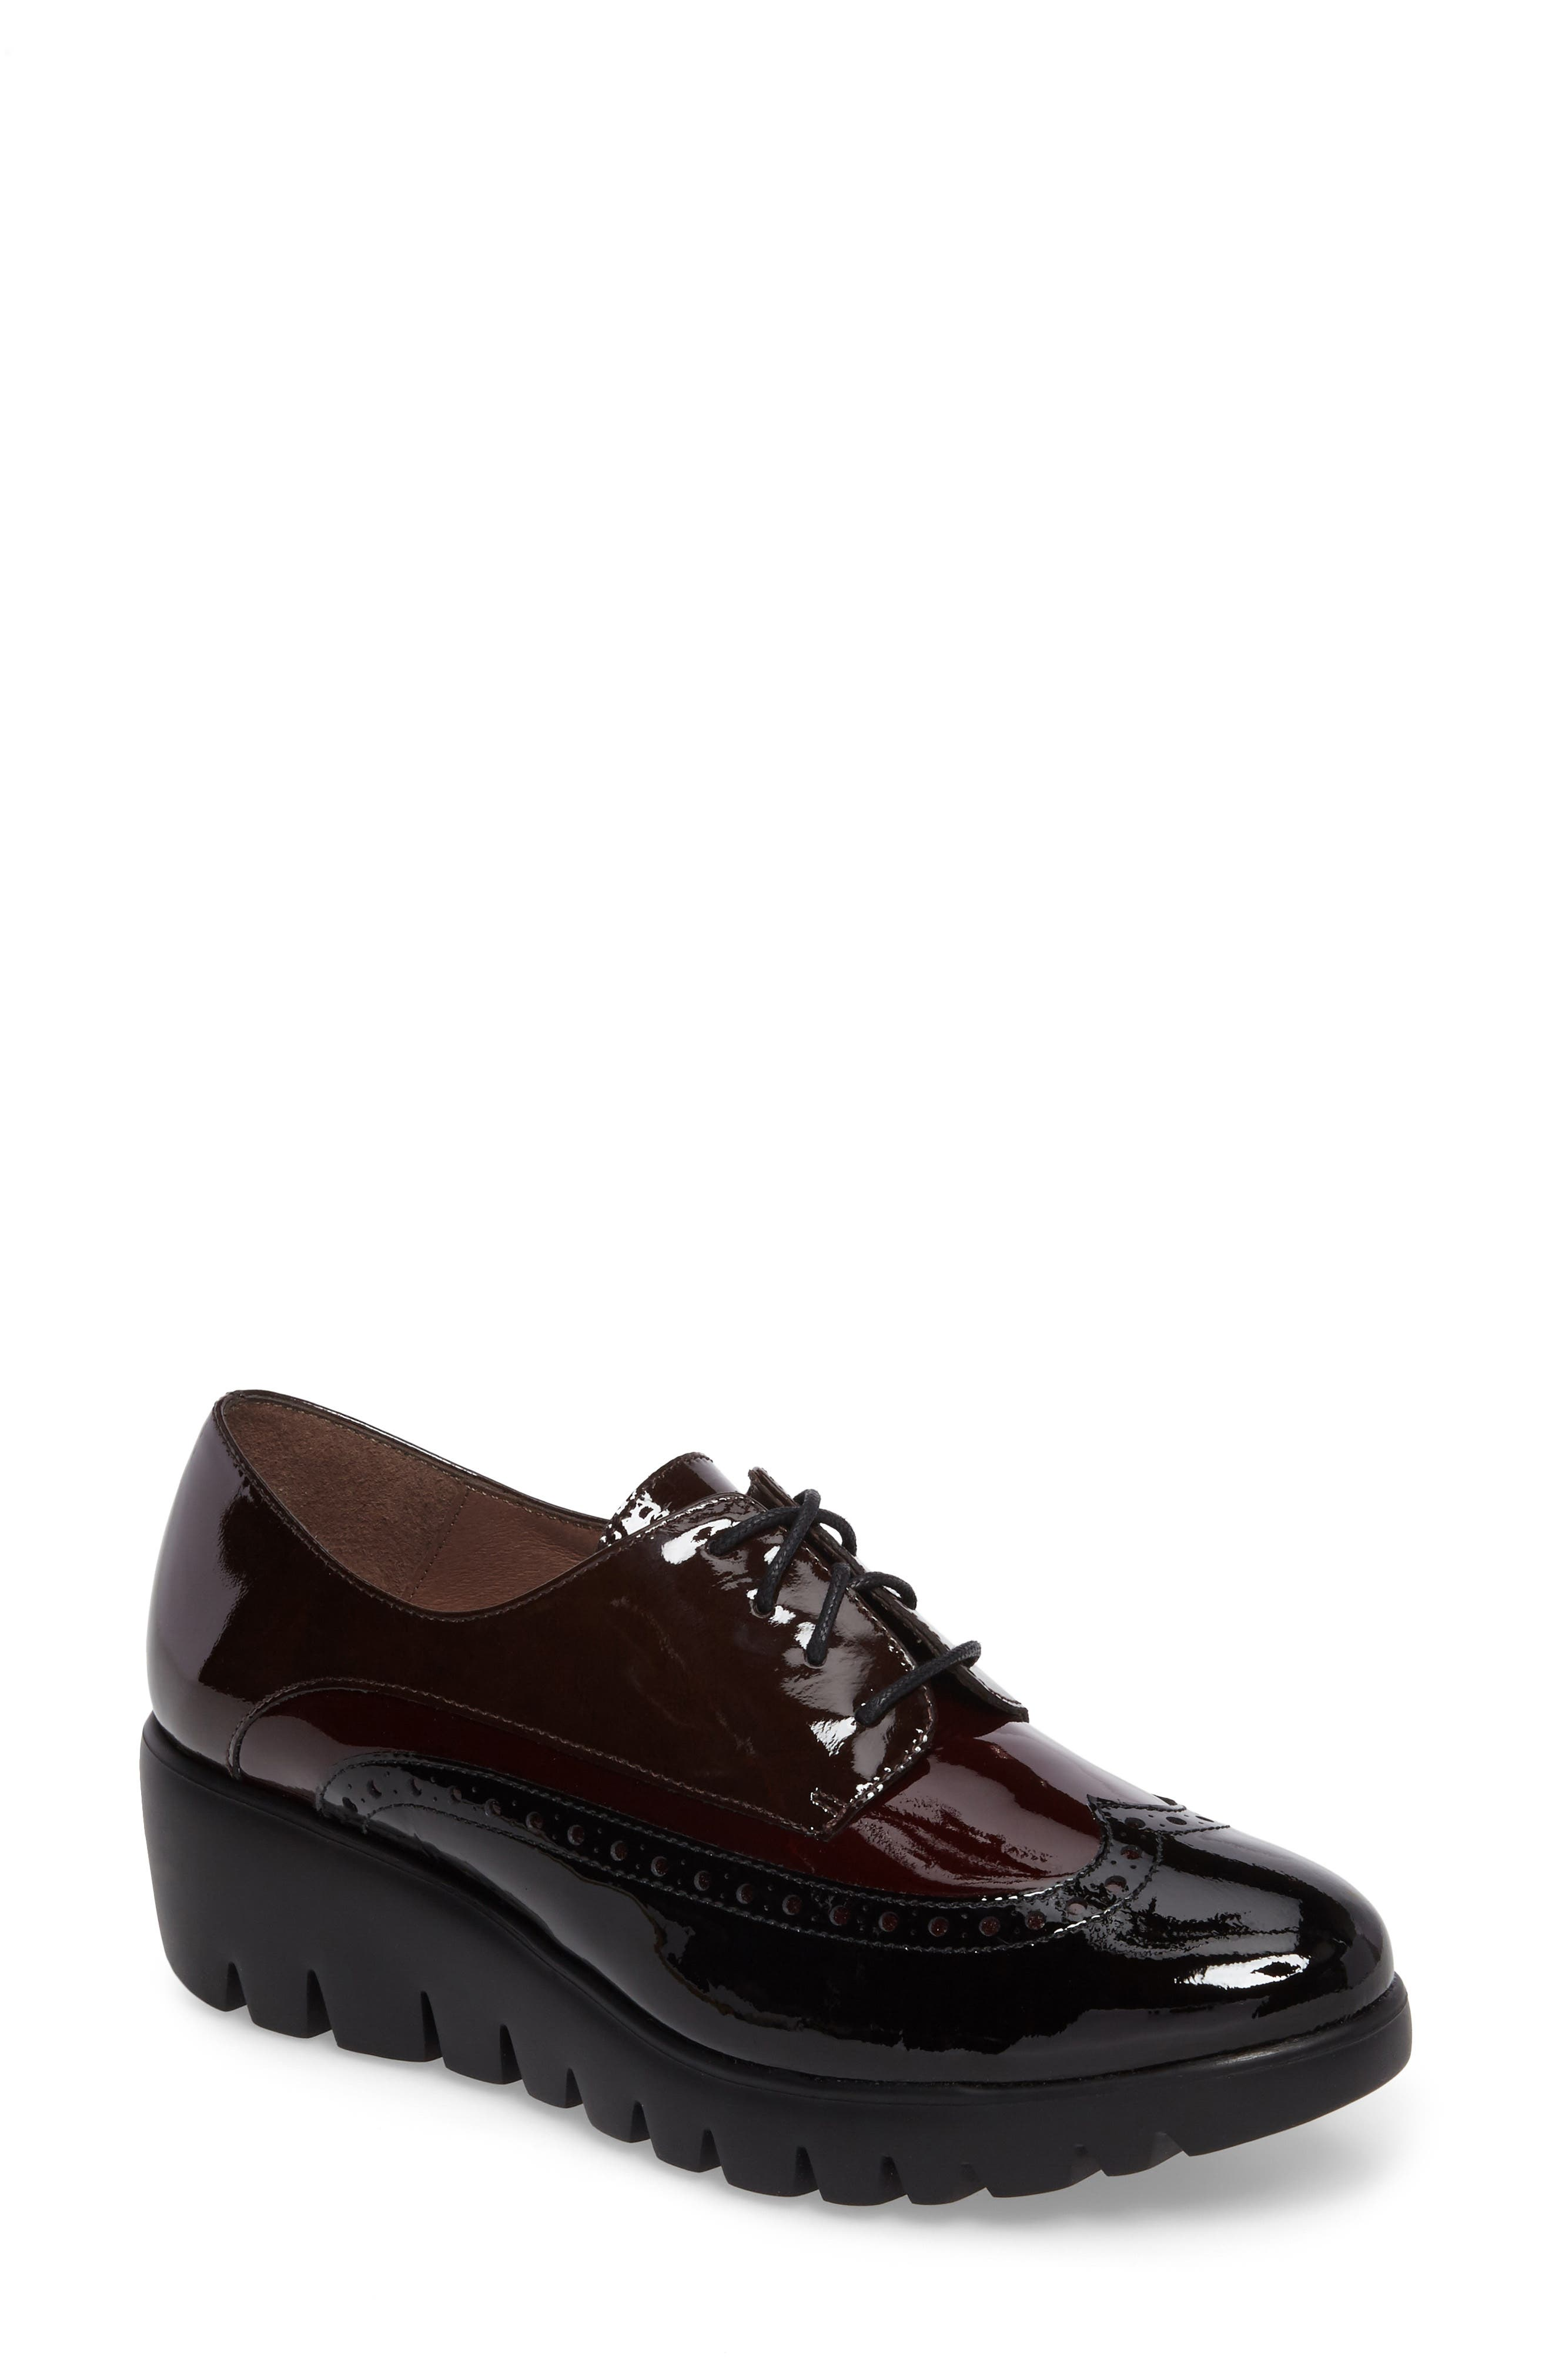 Wedge Wingtip Derby,                             Main thumbnail 1, color,                             Black/ Bordo Patent Leather